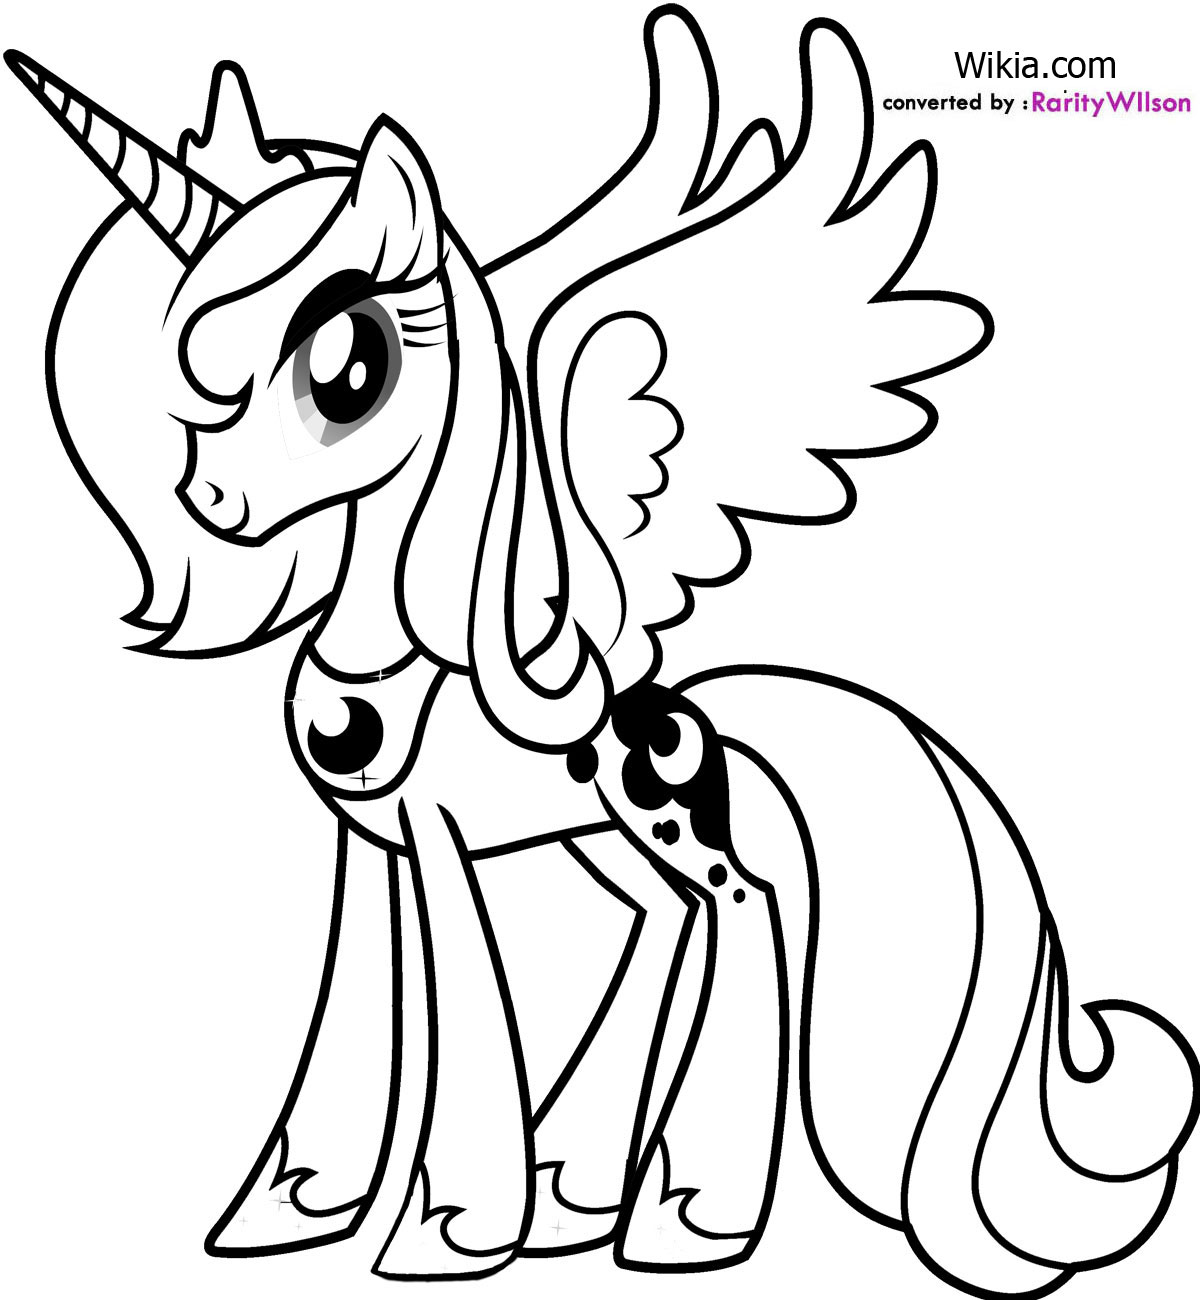 Coloring Pages My Little Pony Princess Luna : Mlp human chibi coloring pages